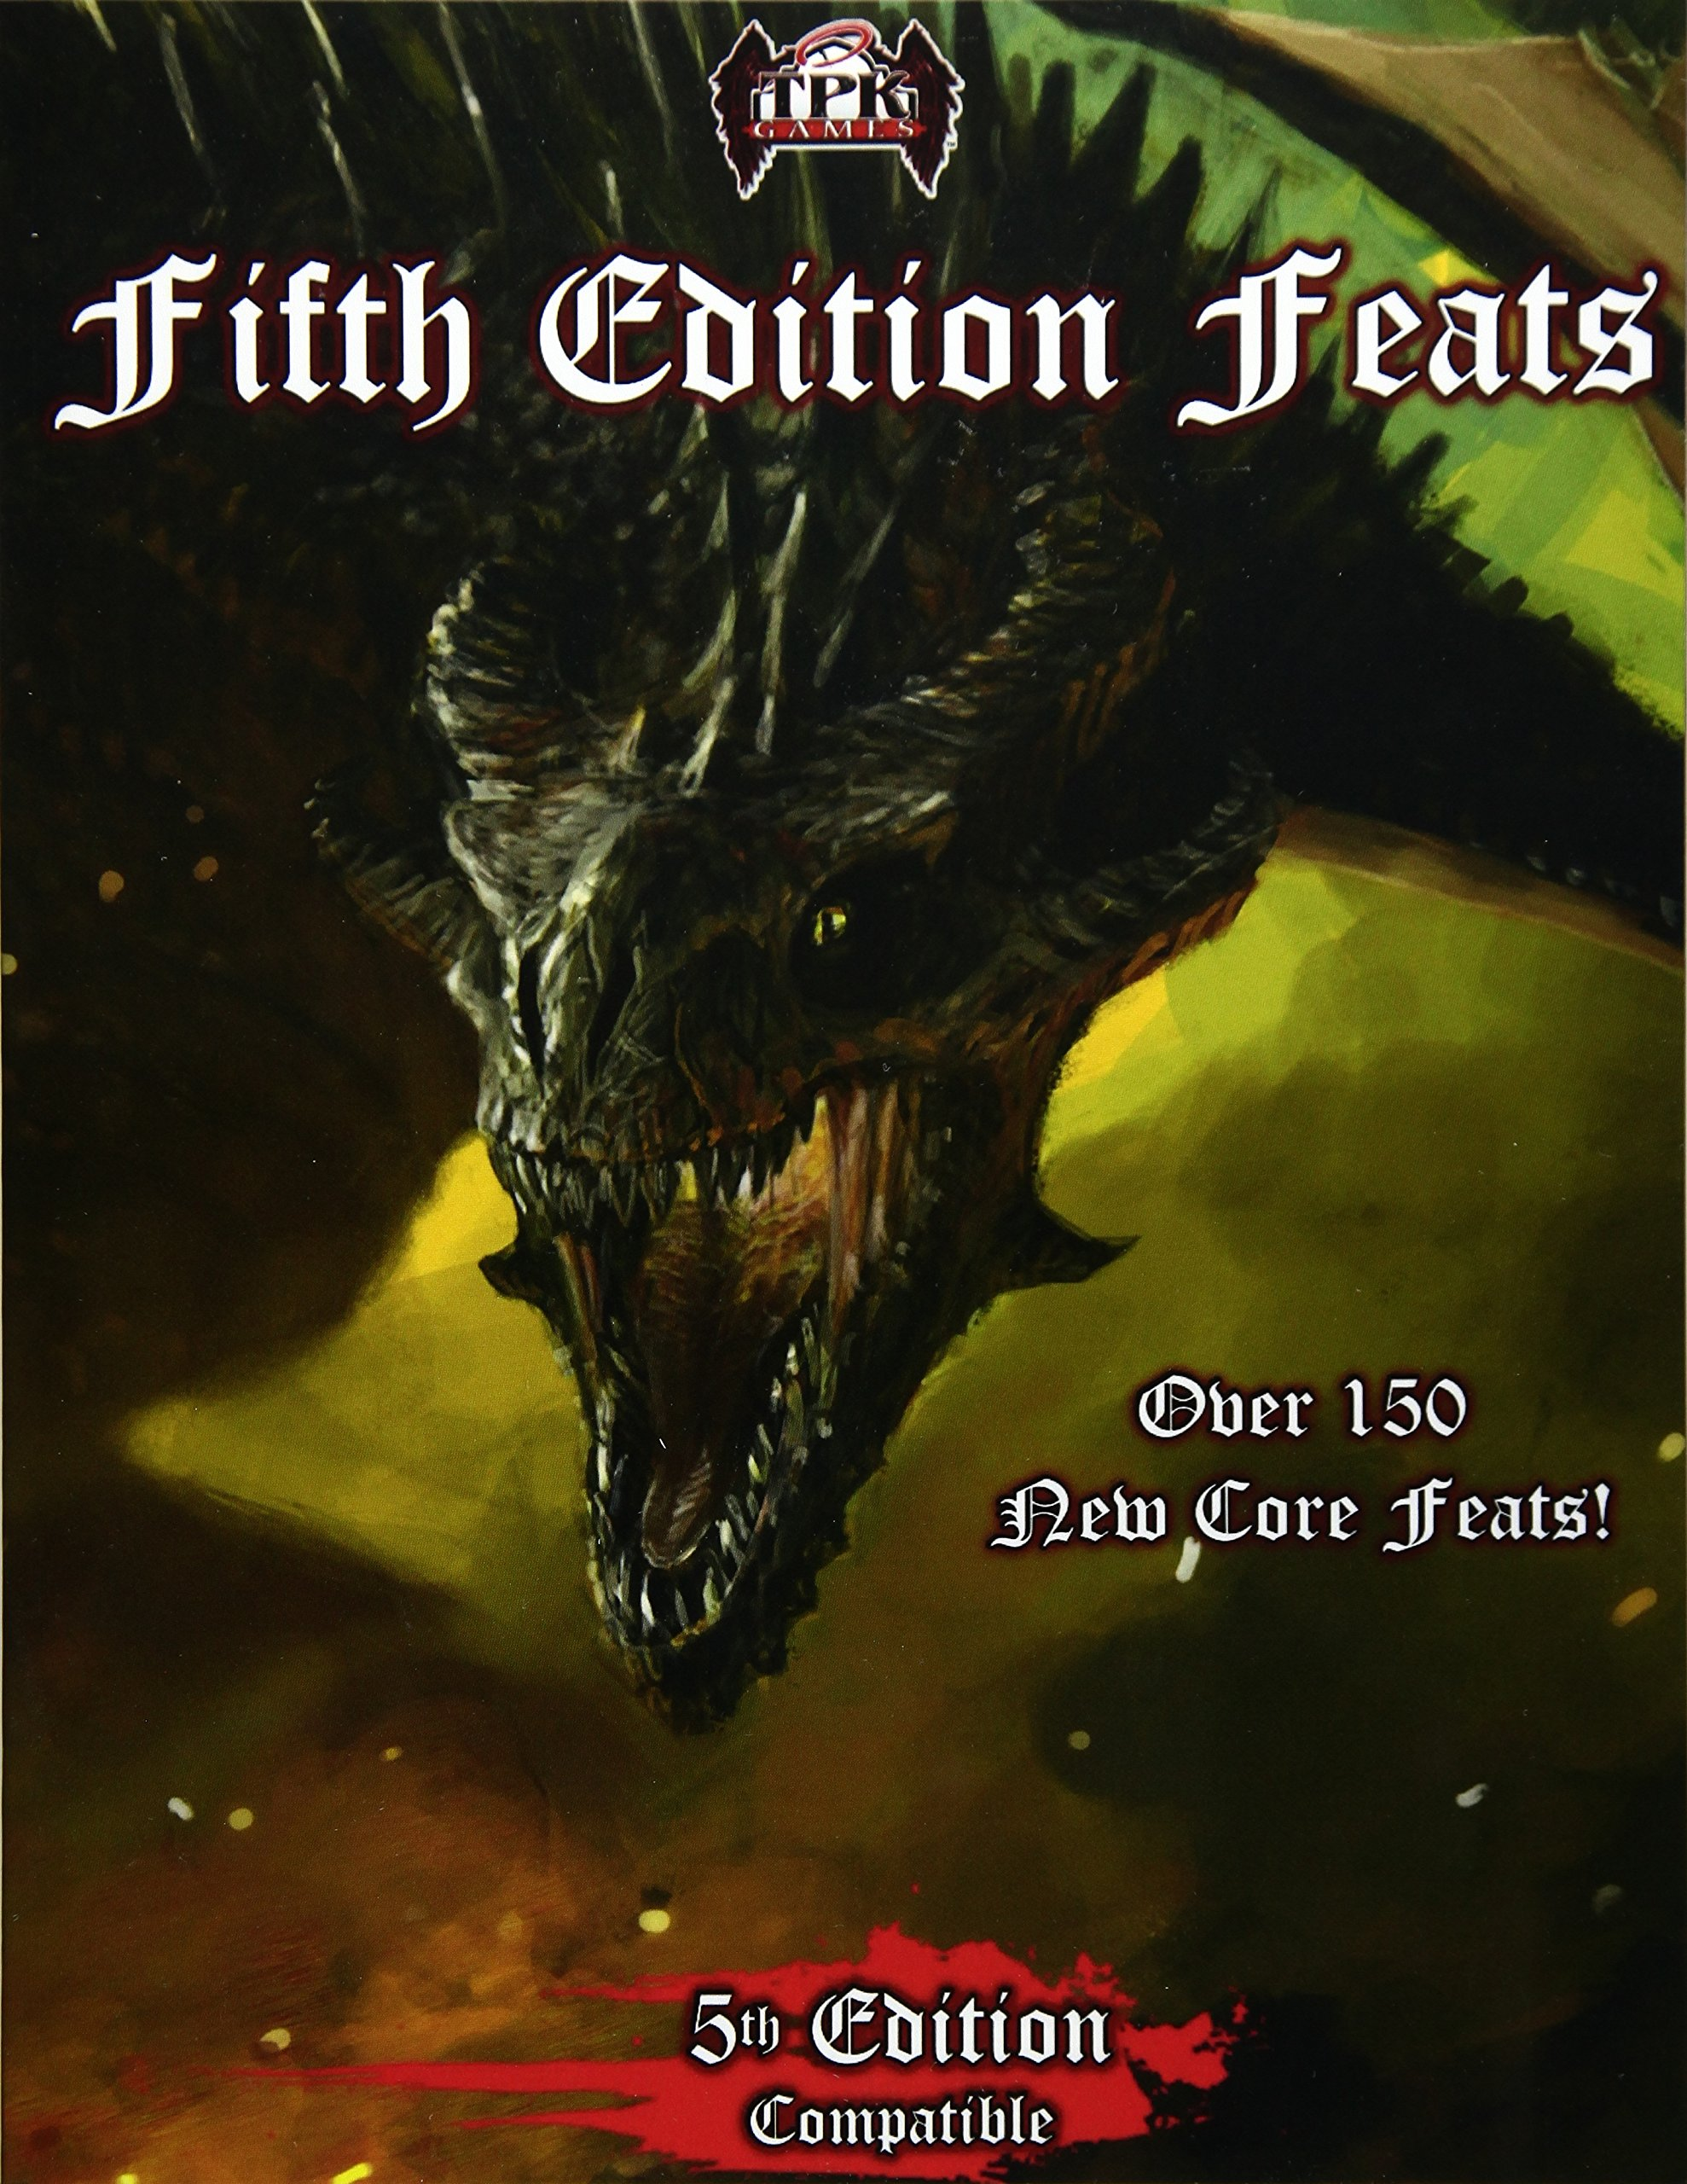 Fifth edition feats brian berg 9781530162437 amazon books fandeluxe Gallery